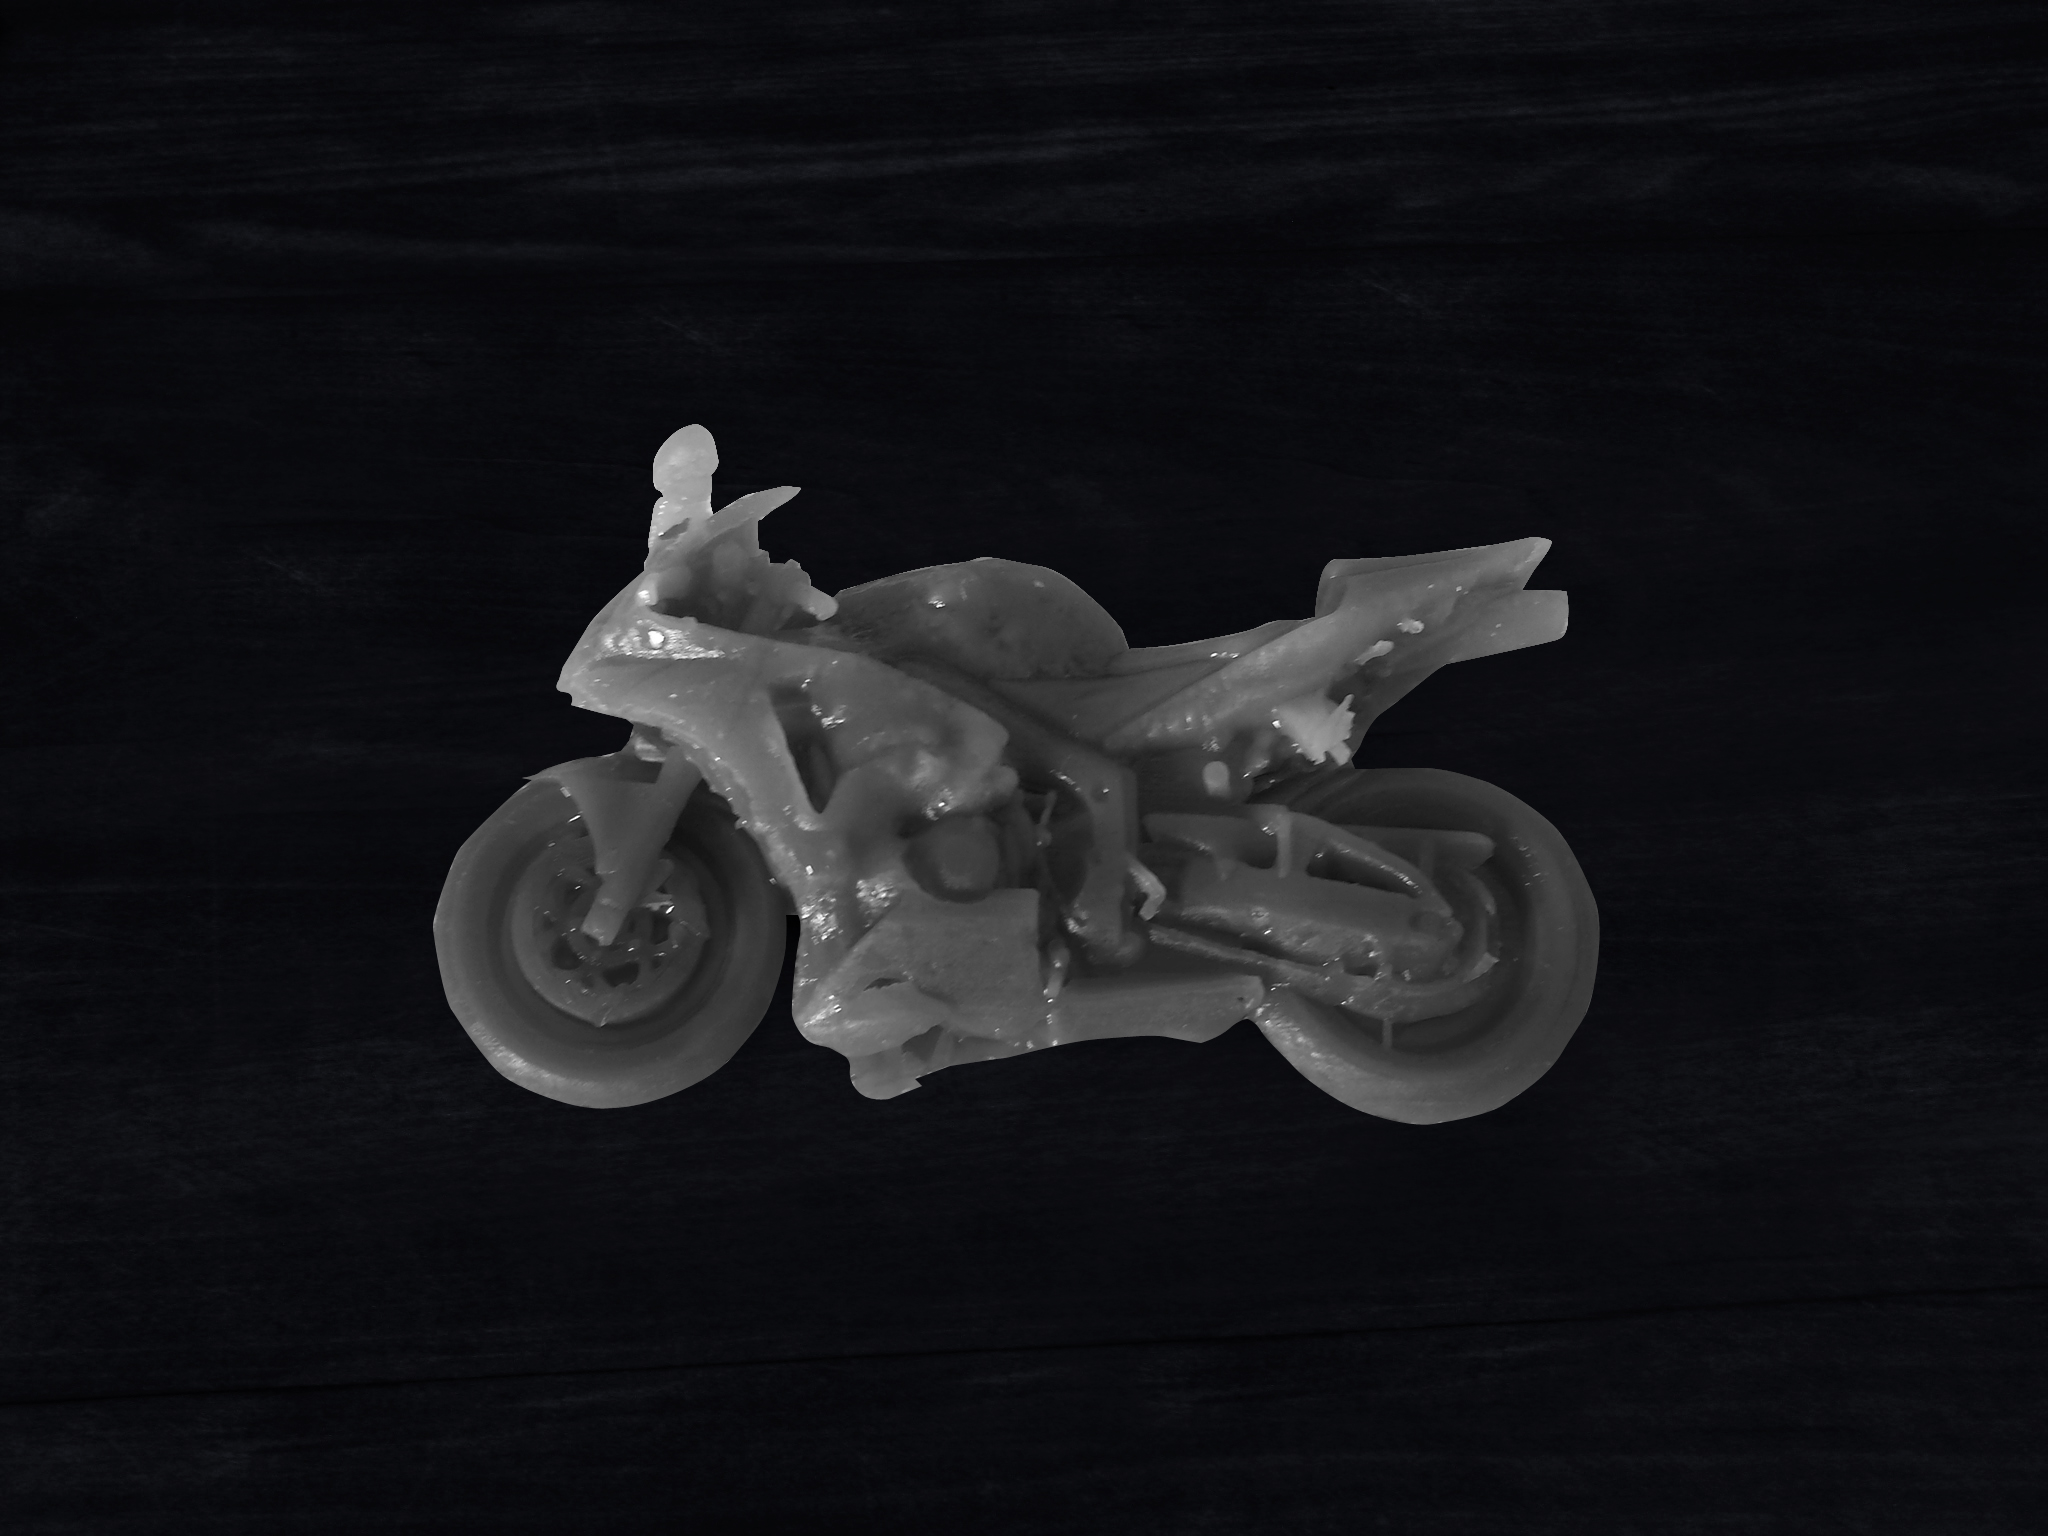 Honda CBR600 3D Print: This Honda CBR600 was 3D printed to see how the motorcycle slides on the ground given its geometry. This 3D print was a very useful tool in understanding the gouge marks found at the accident scene as and a demonstrative exhibit to convey that information to a jury.